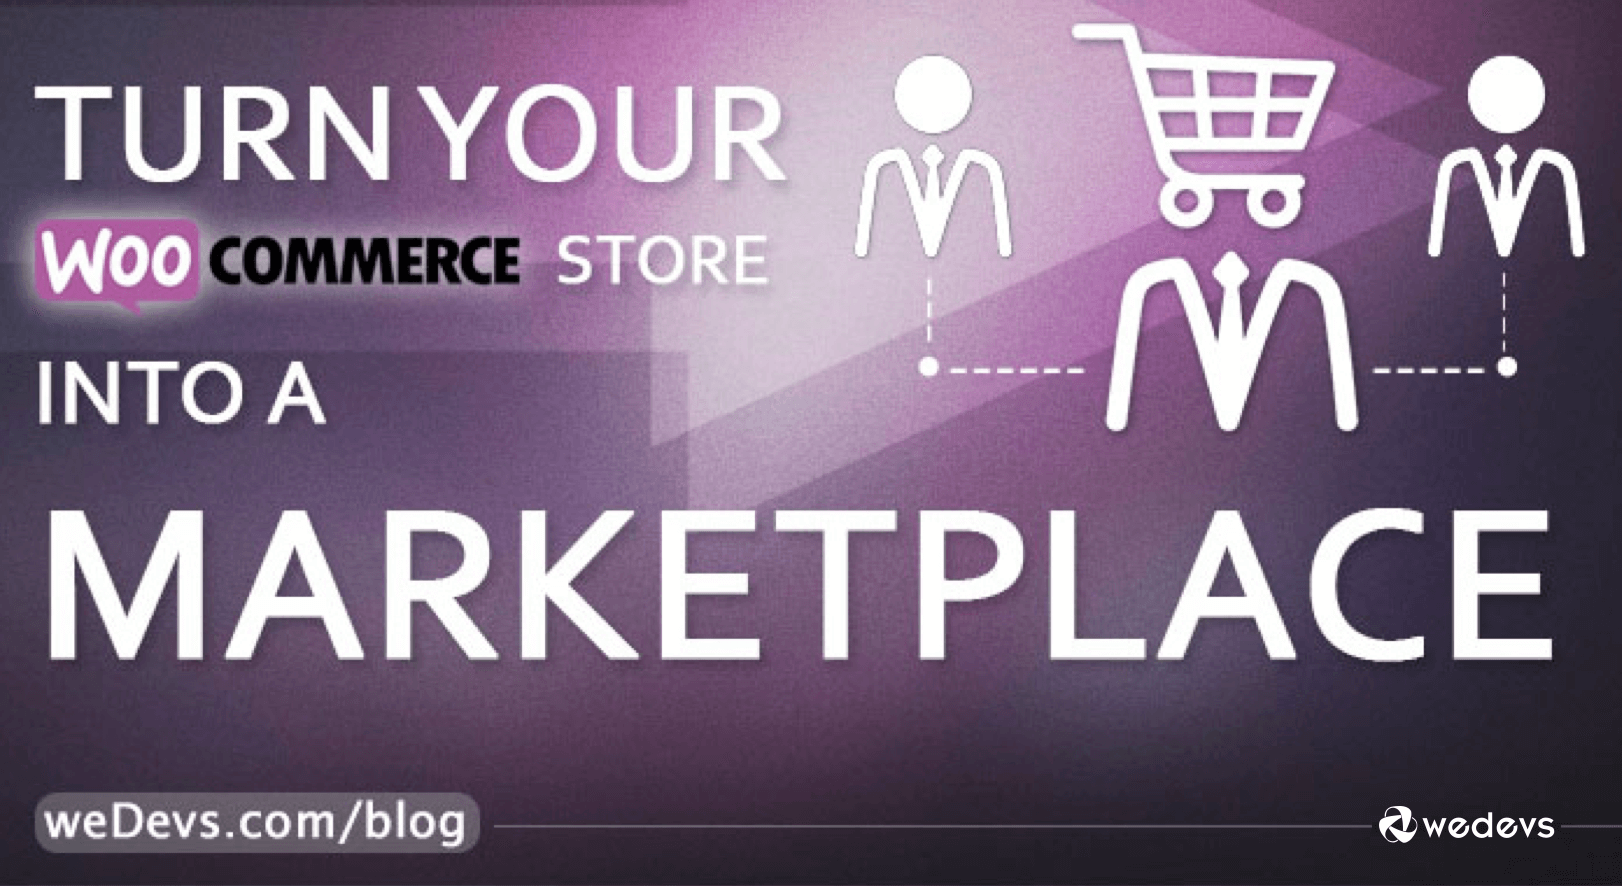 Turn your WooCommerce store into a Marketplace